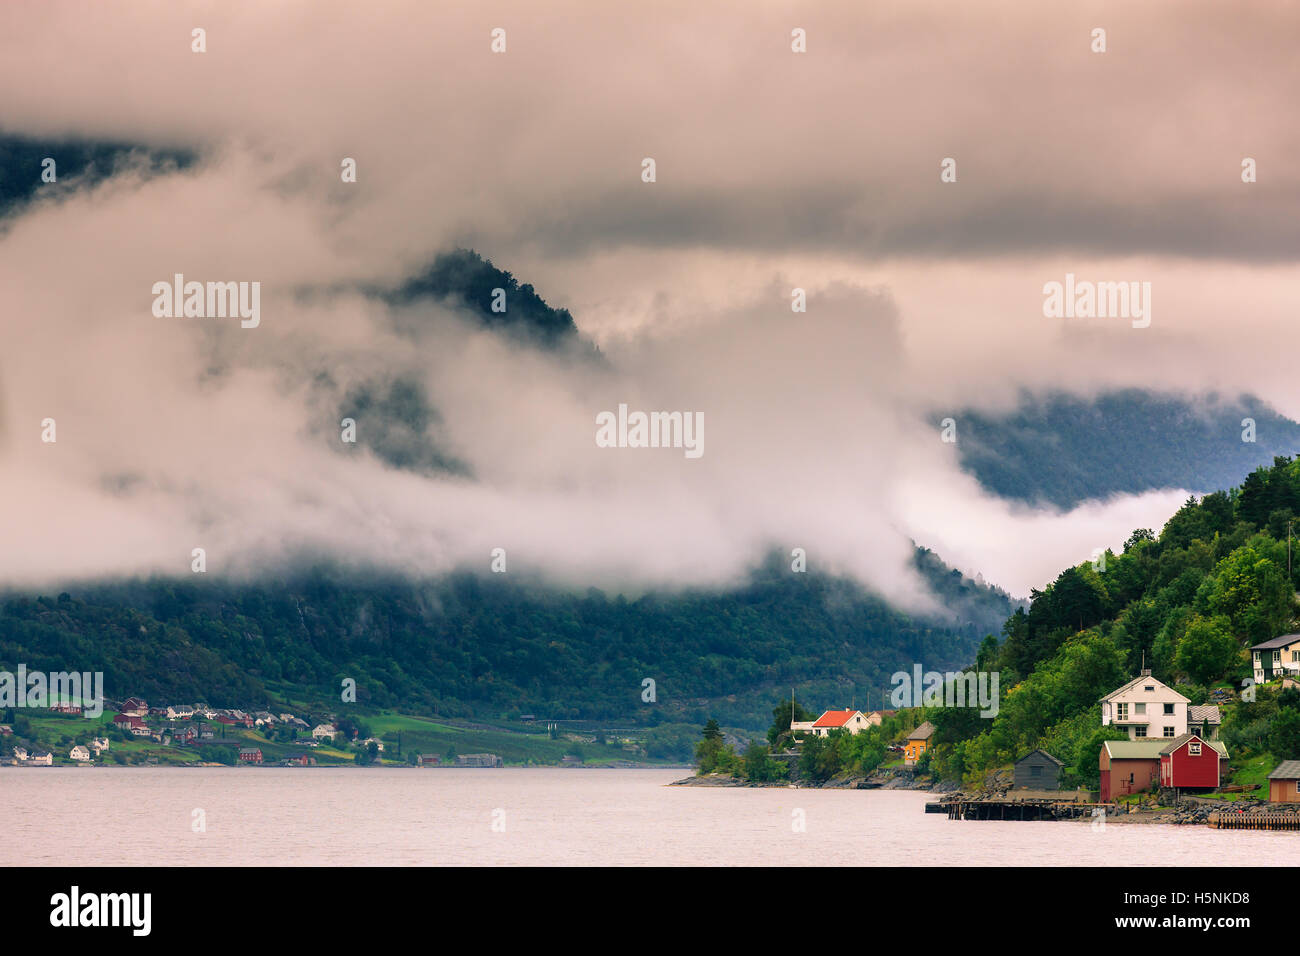 The Hardangerfjord is the fourth longest fjord in the world, and the second longest fjord in Norway. - Stock Image